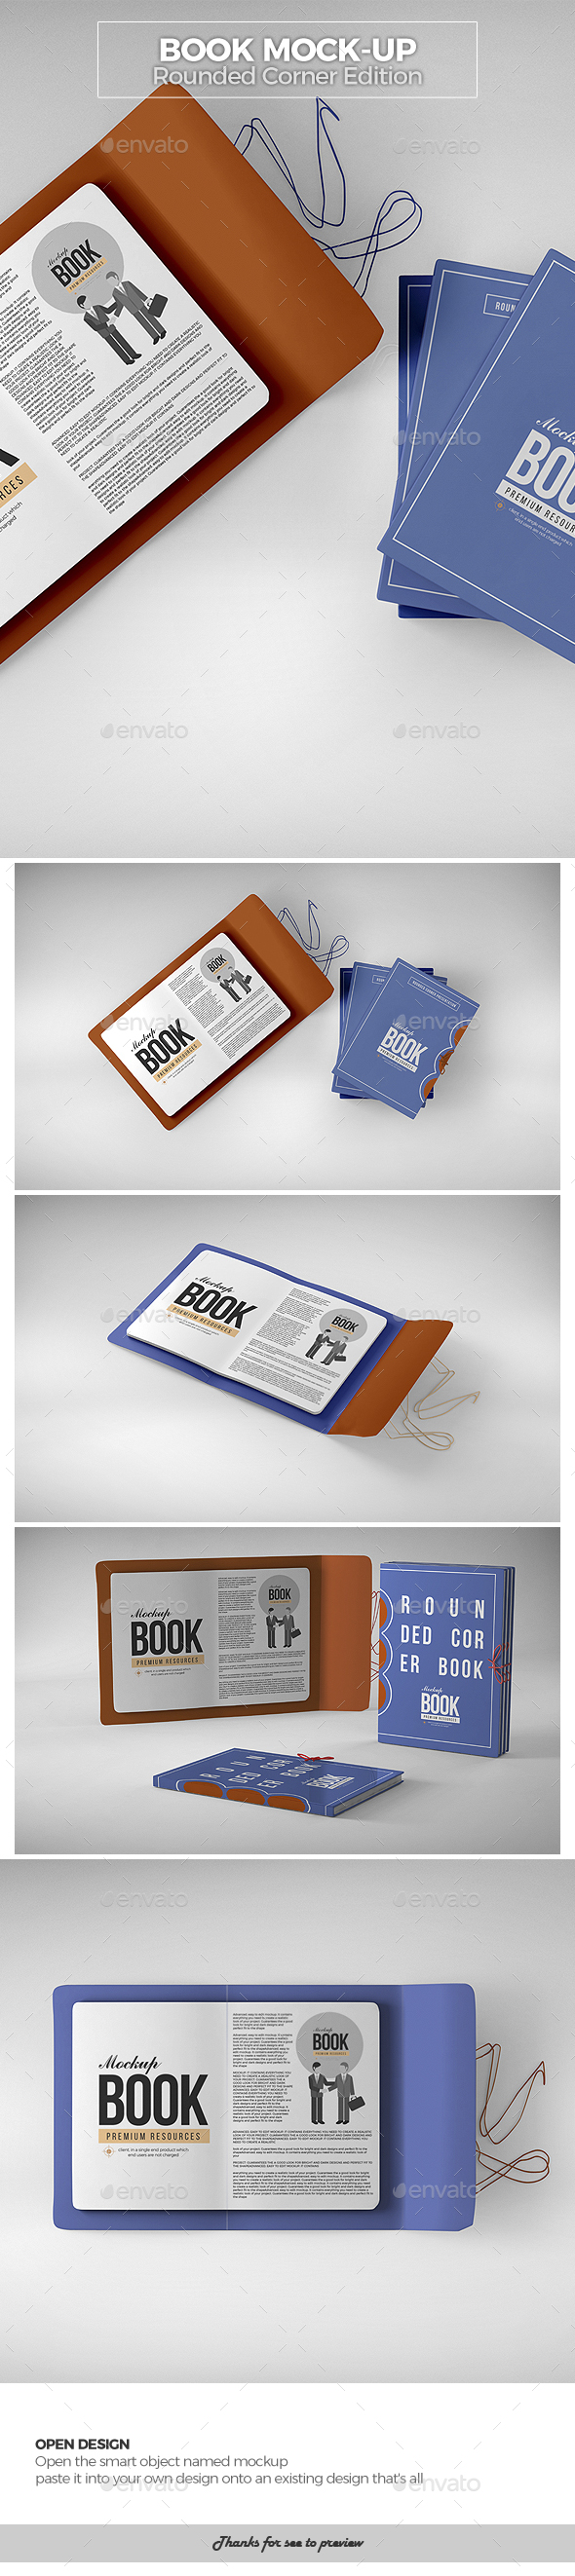 Book Mock-Up / Rounded Corner Edition - Books Print